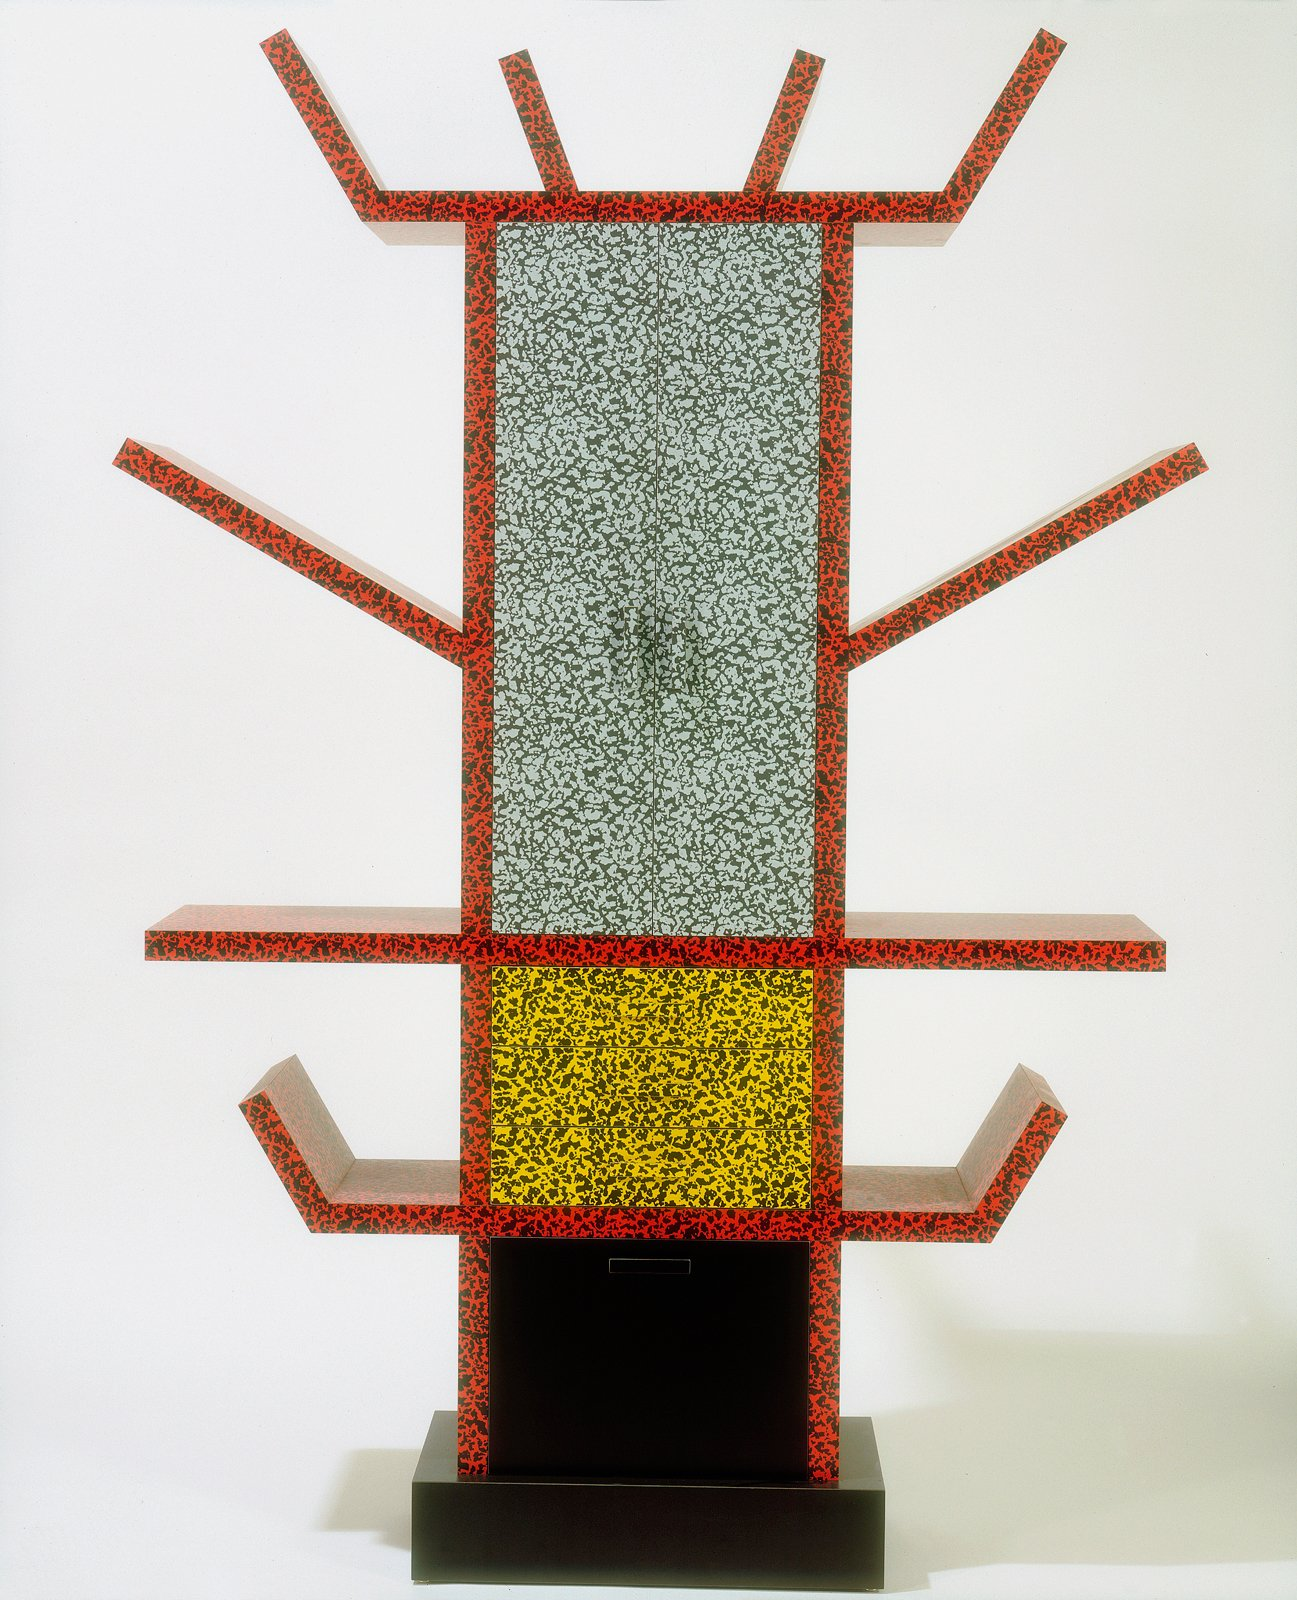 """Ettore Sorrsass (for Memphis), Casablanca sideboard, 1981. Plastic laminate over fibreboard. © V&A Images  Photo 9 of 12 in """"Postmodernism"""" at the V&A Museum"""